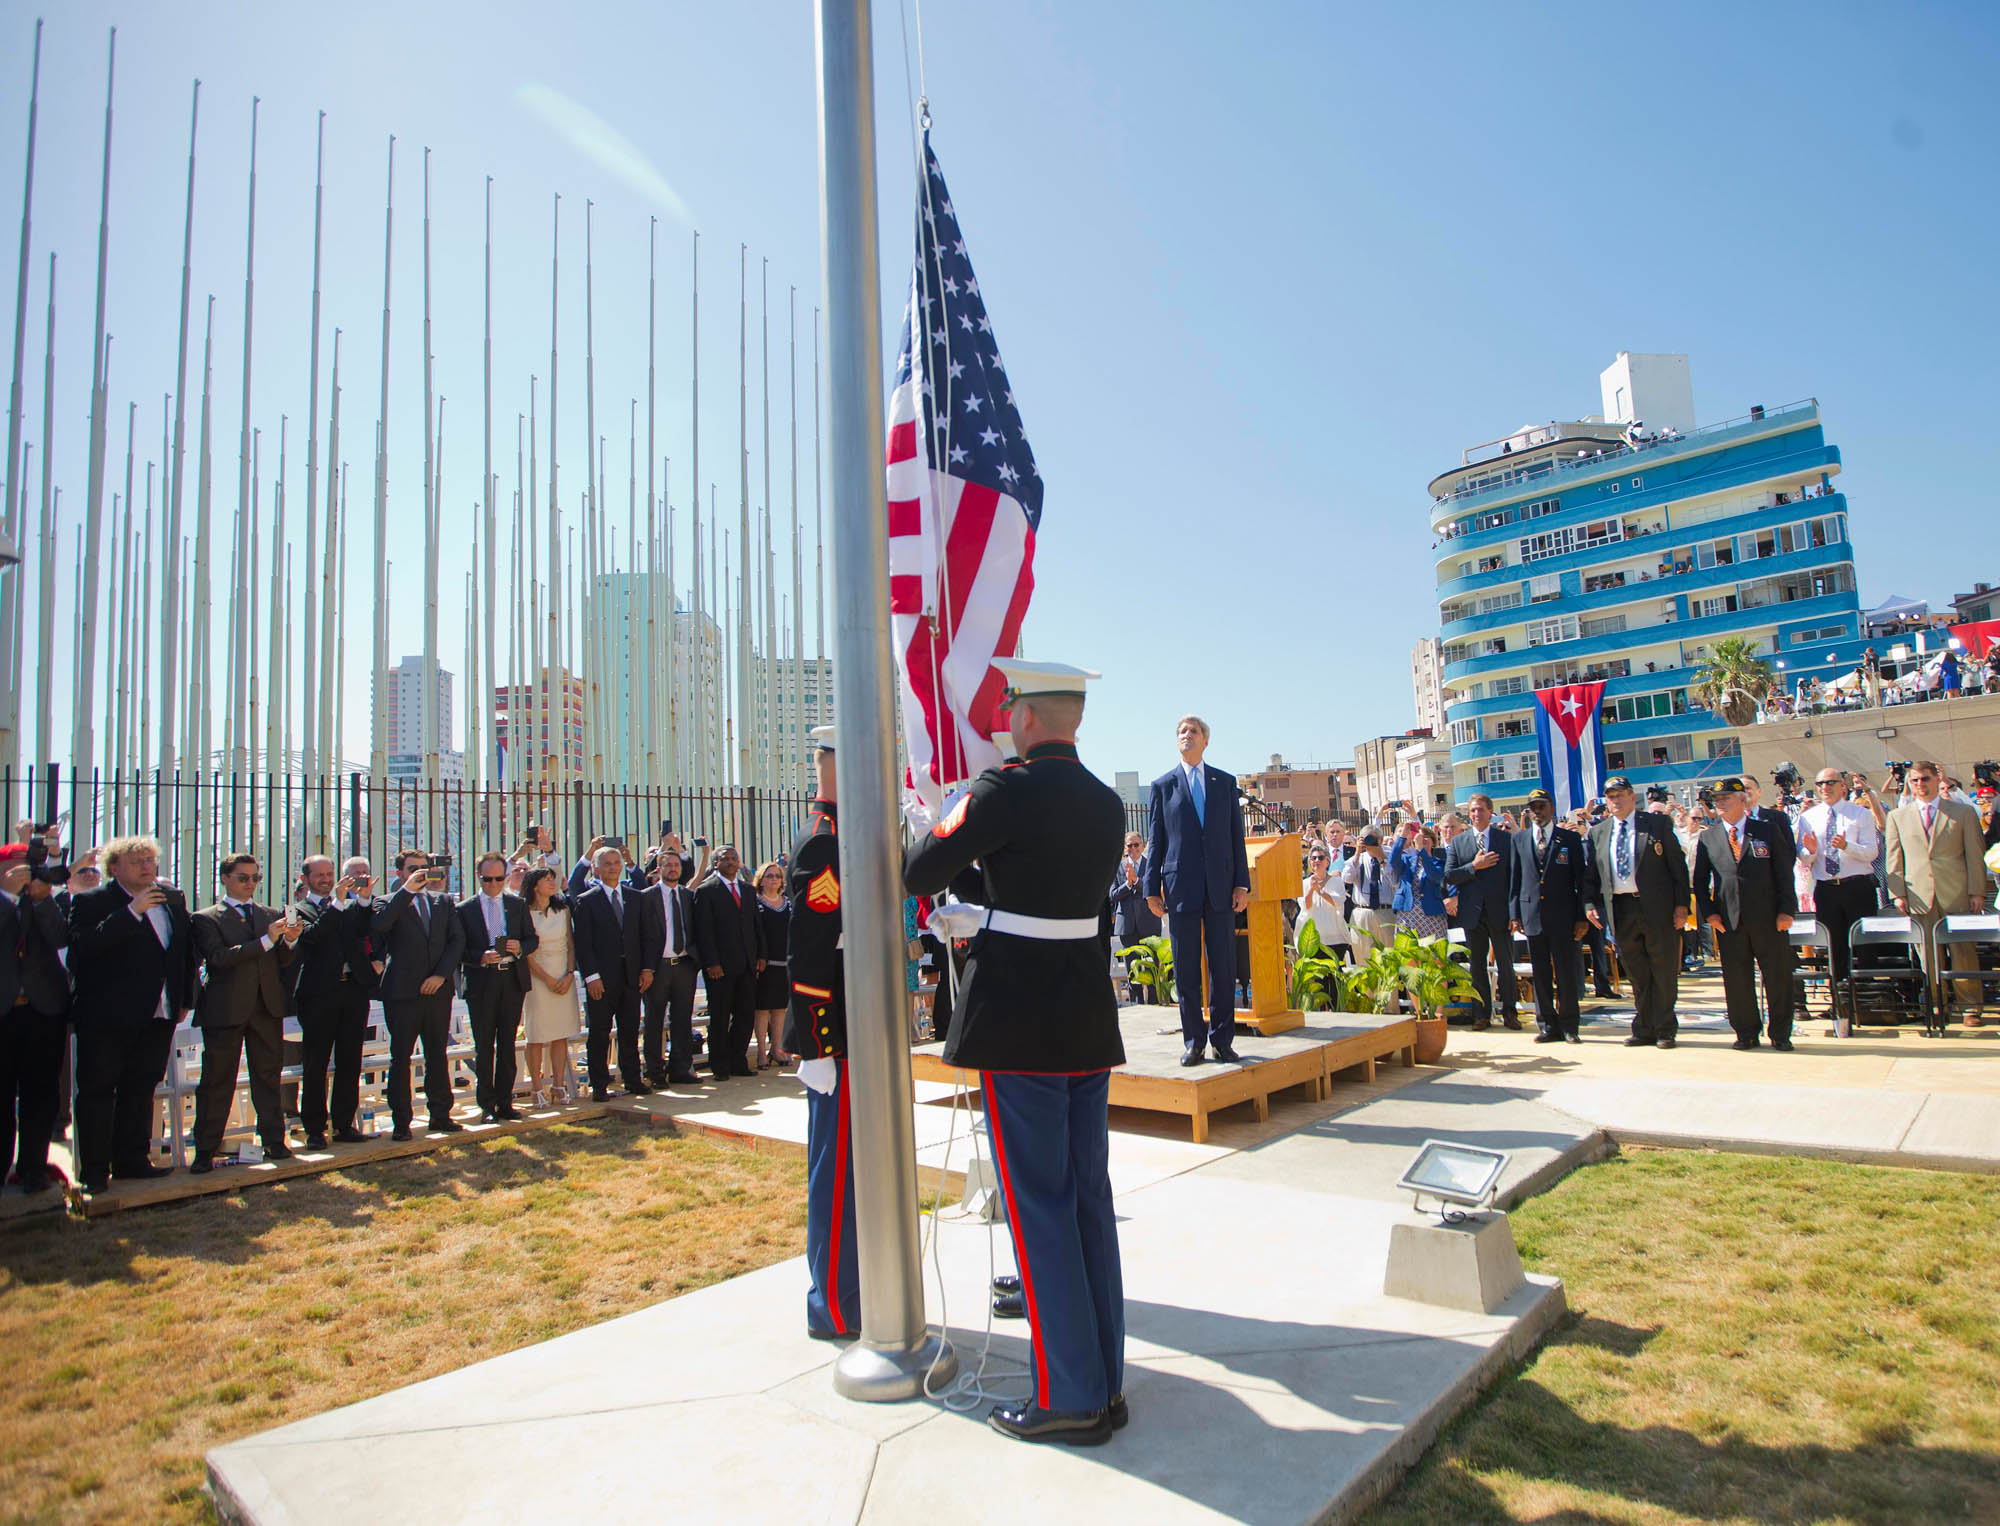 John Kerry, marines and other people looking at the U.S. flag (© AP Images)